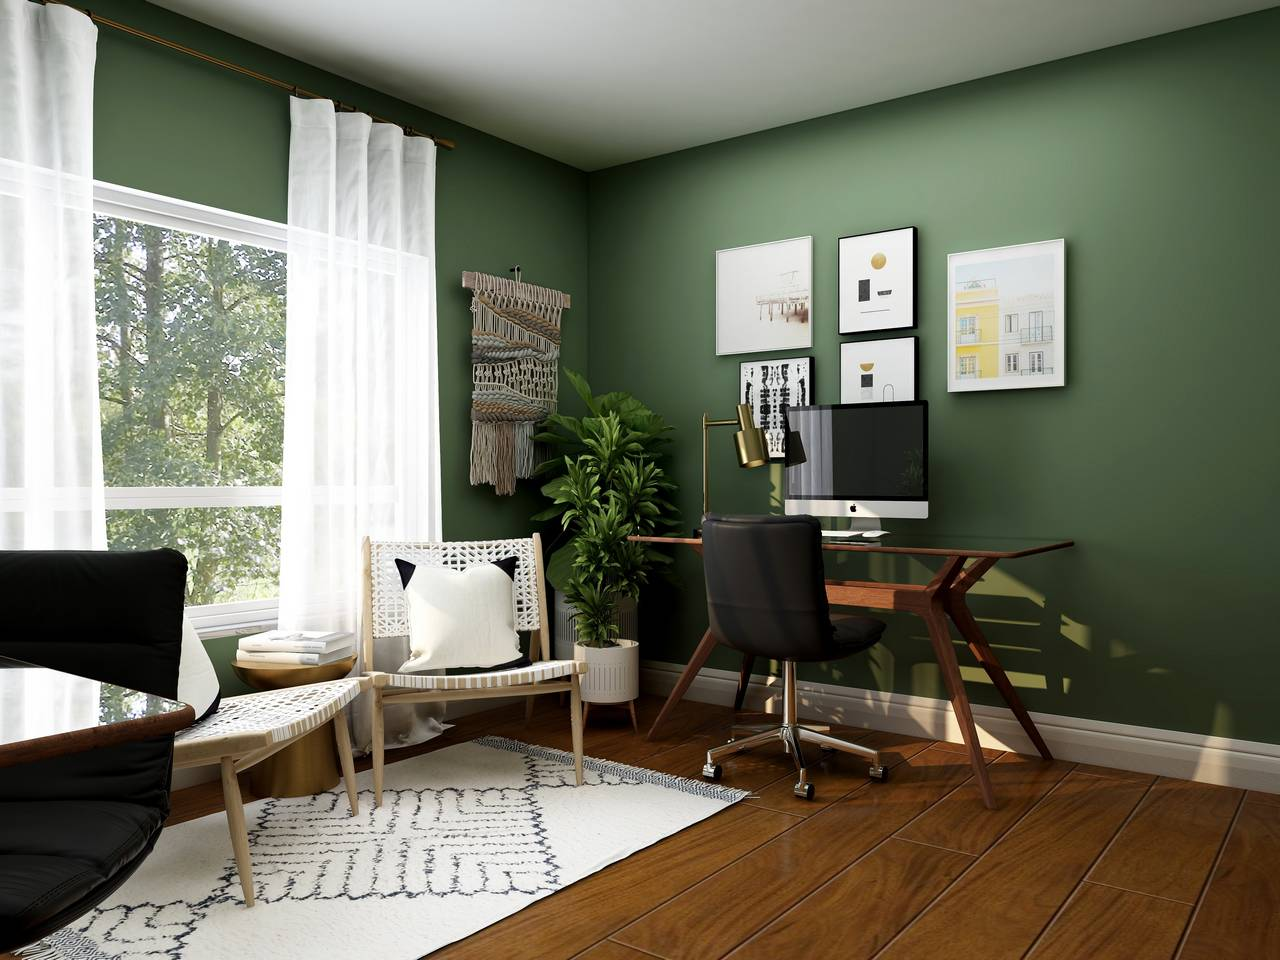 image - 3 Easy Yet Highly Effective Ways to Improve Your Home Office